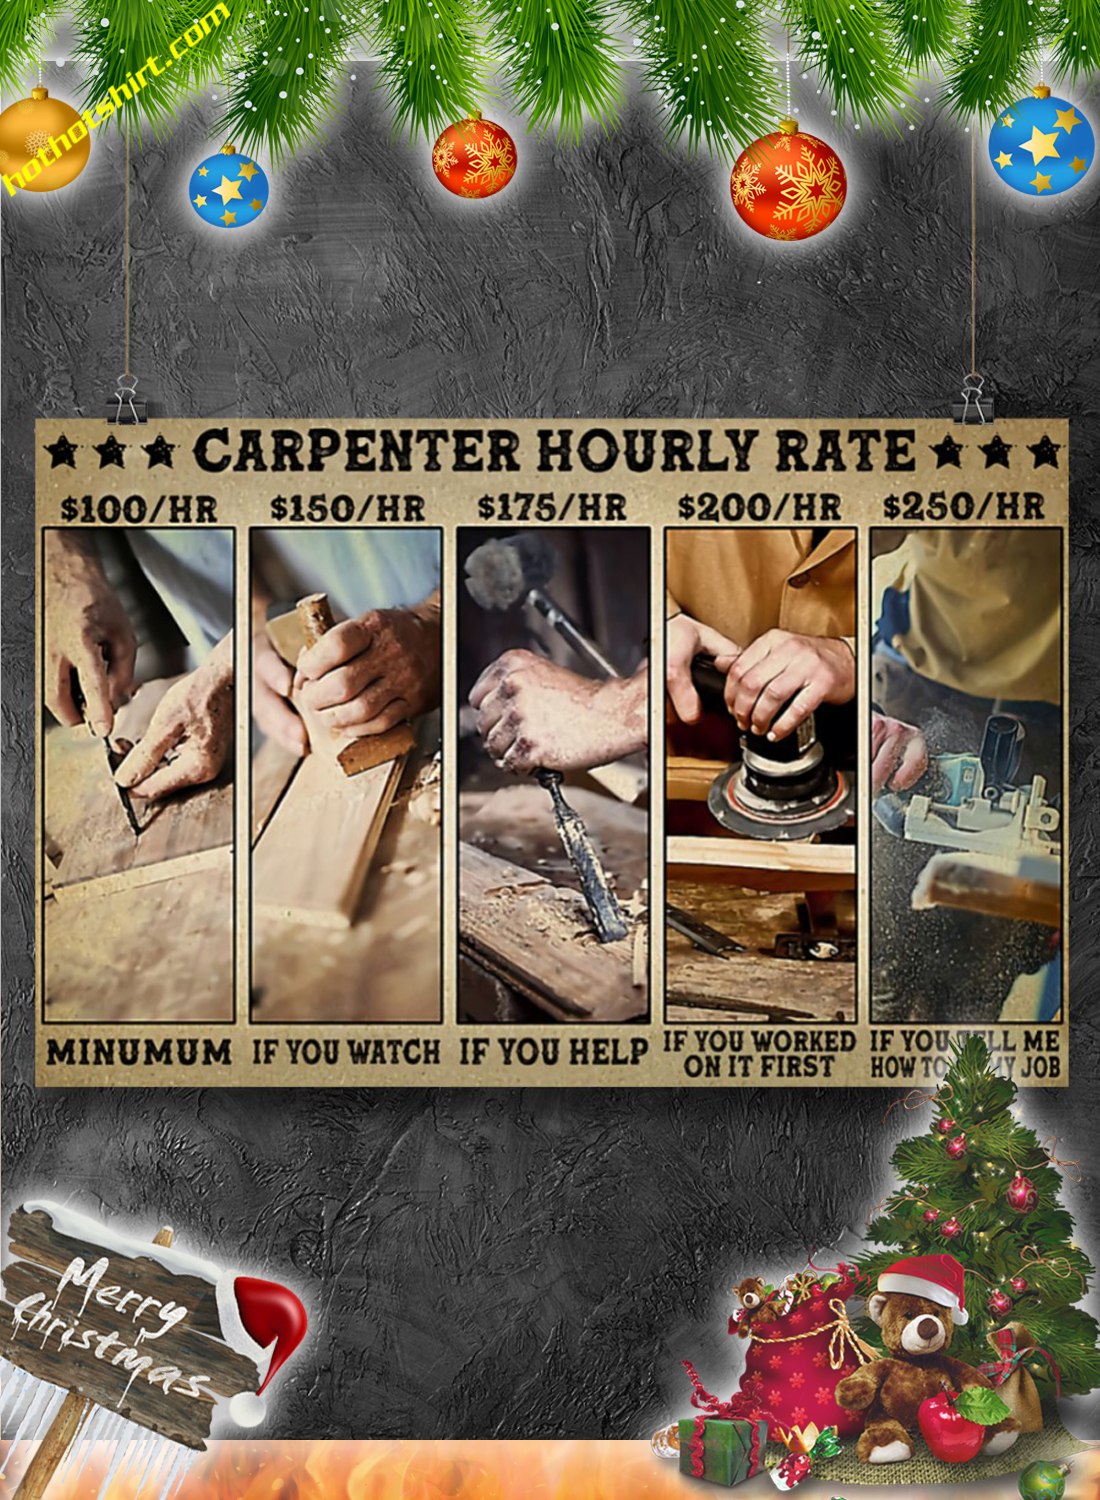 Carpenter hourly rate poster 3